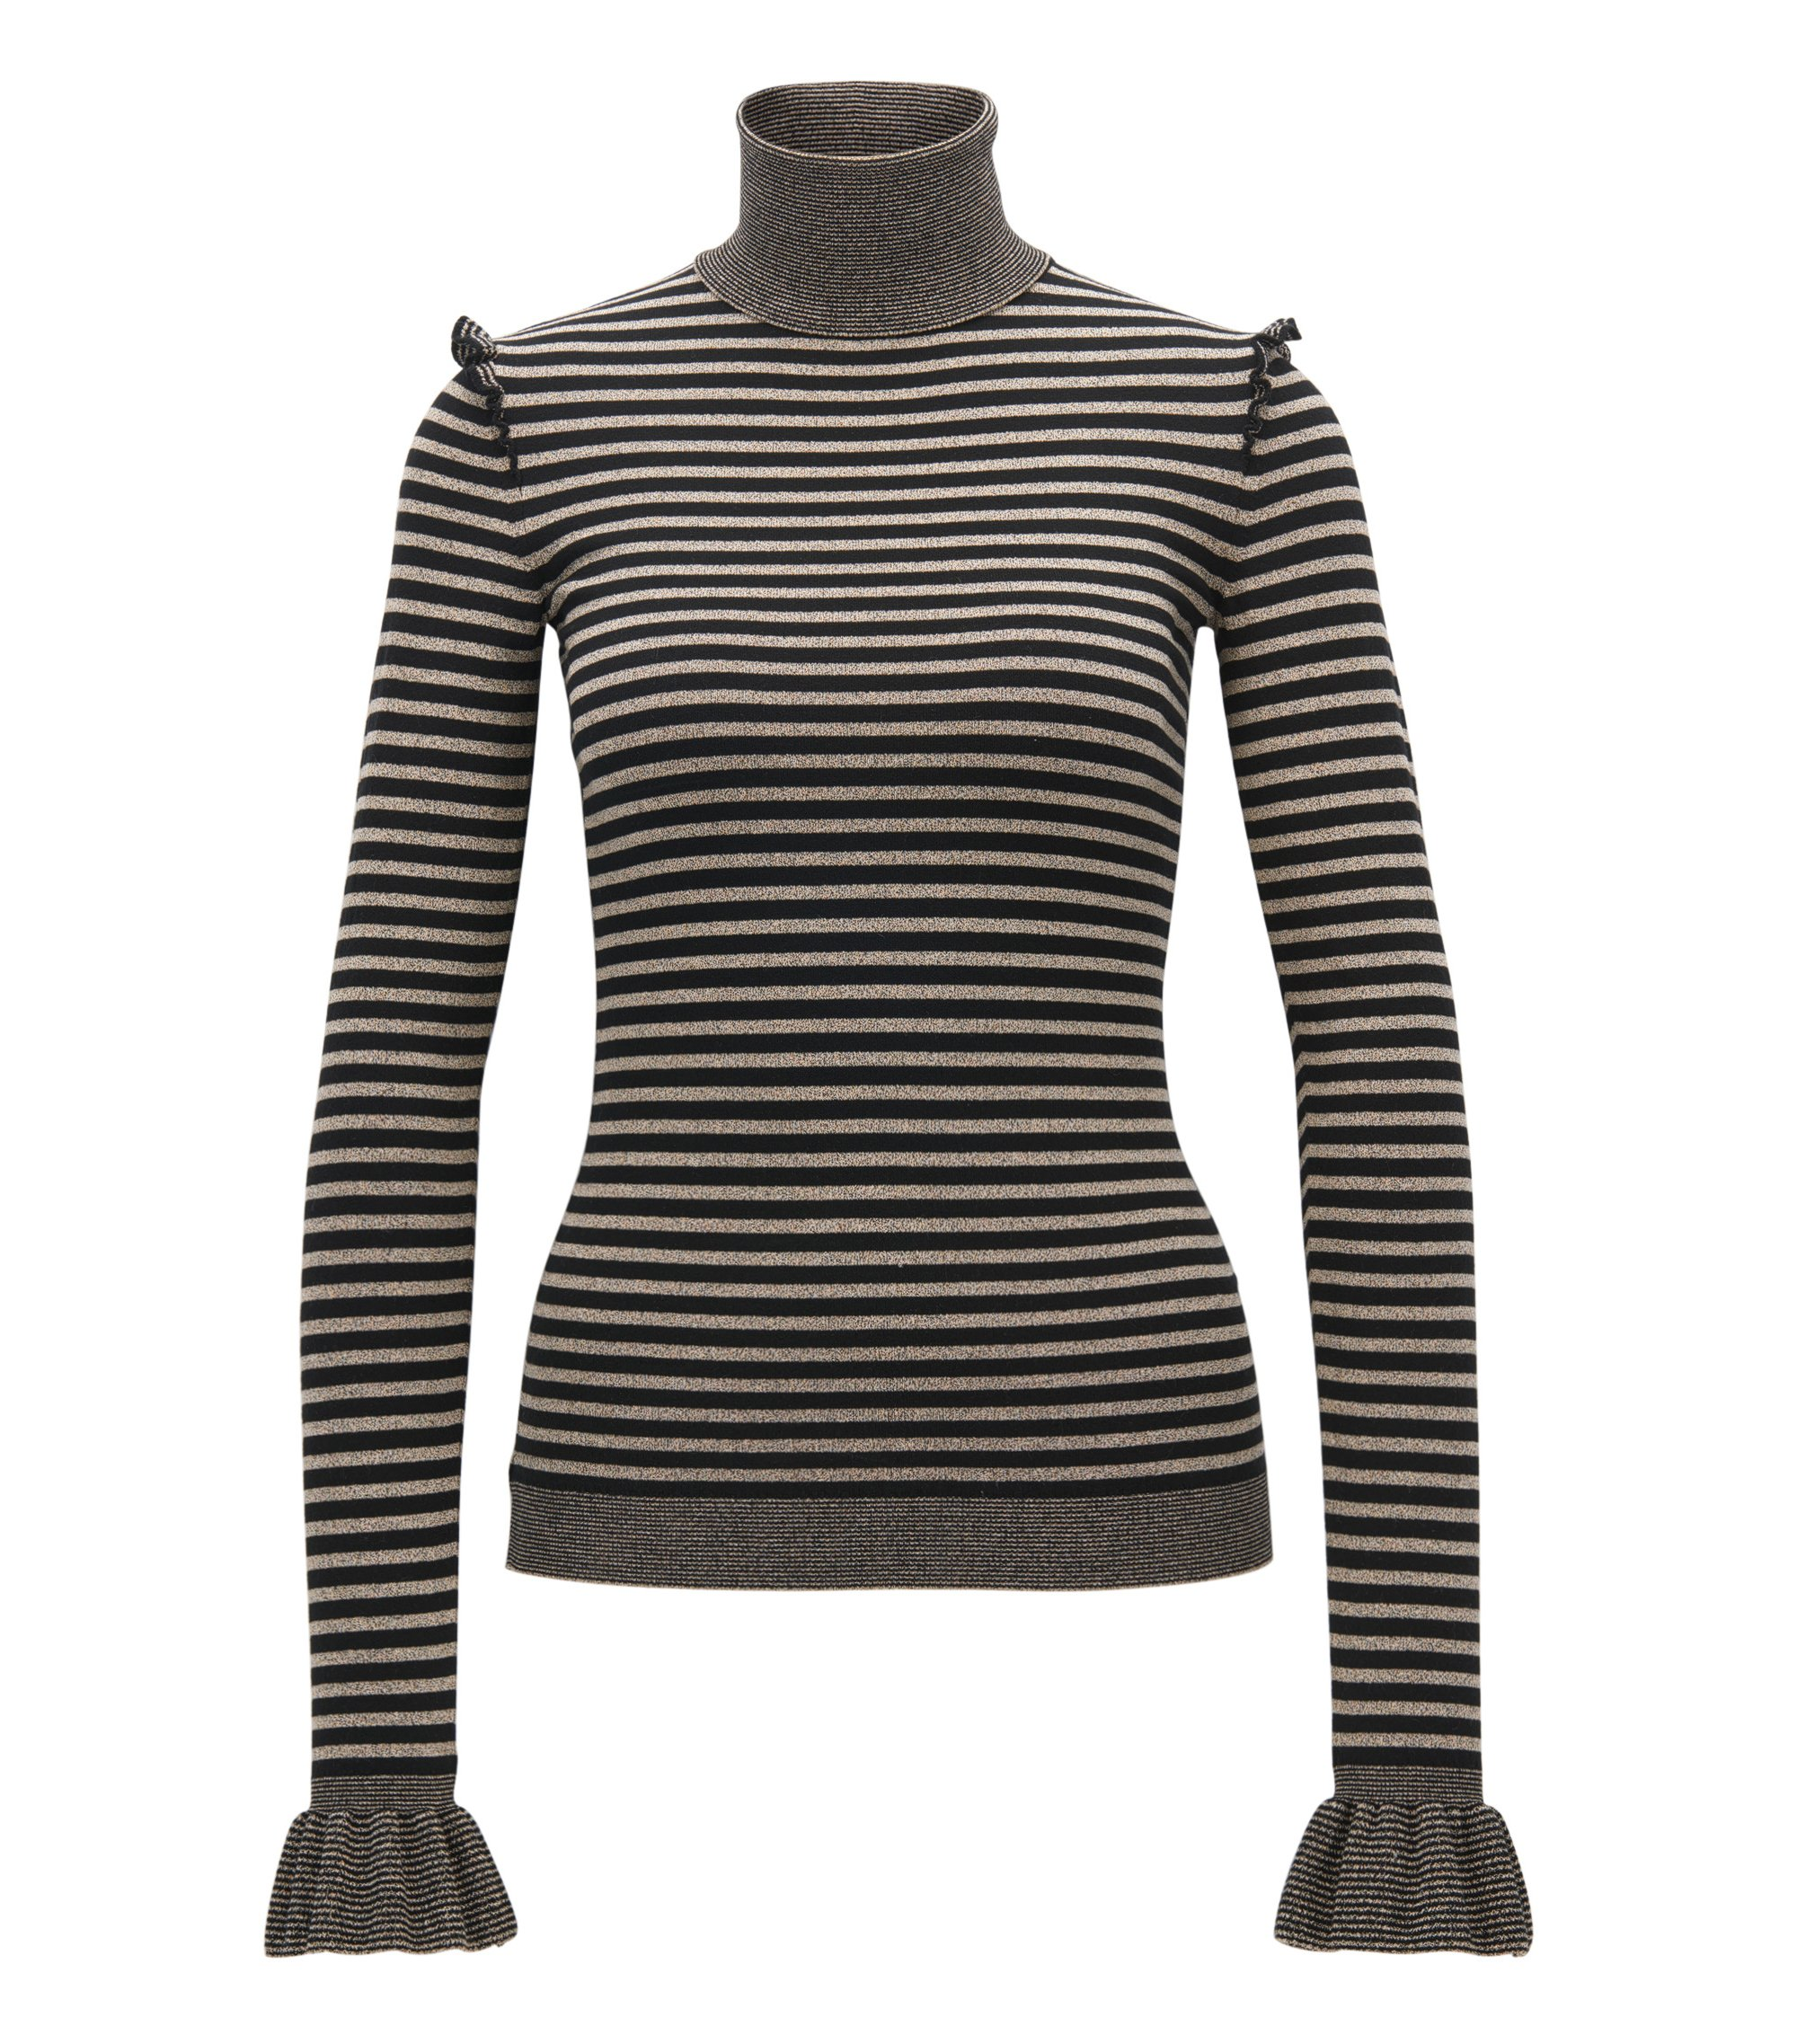 Turtle-neck striped jumper with ruffle details, Beige